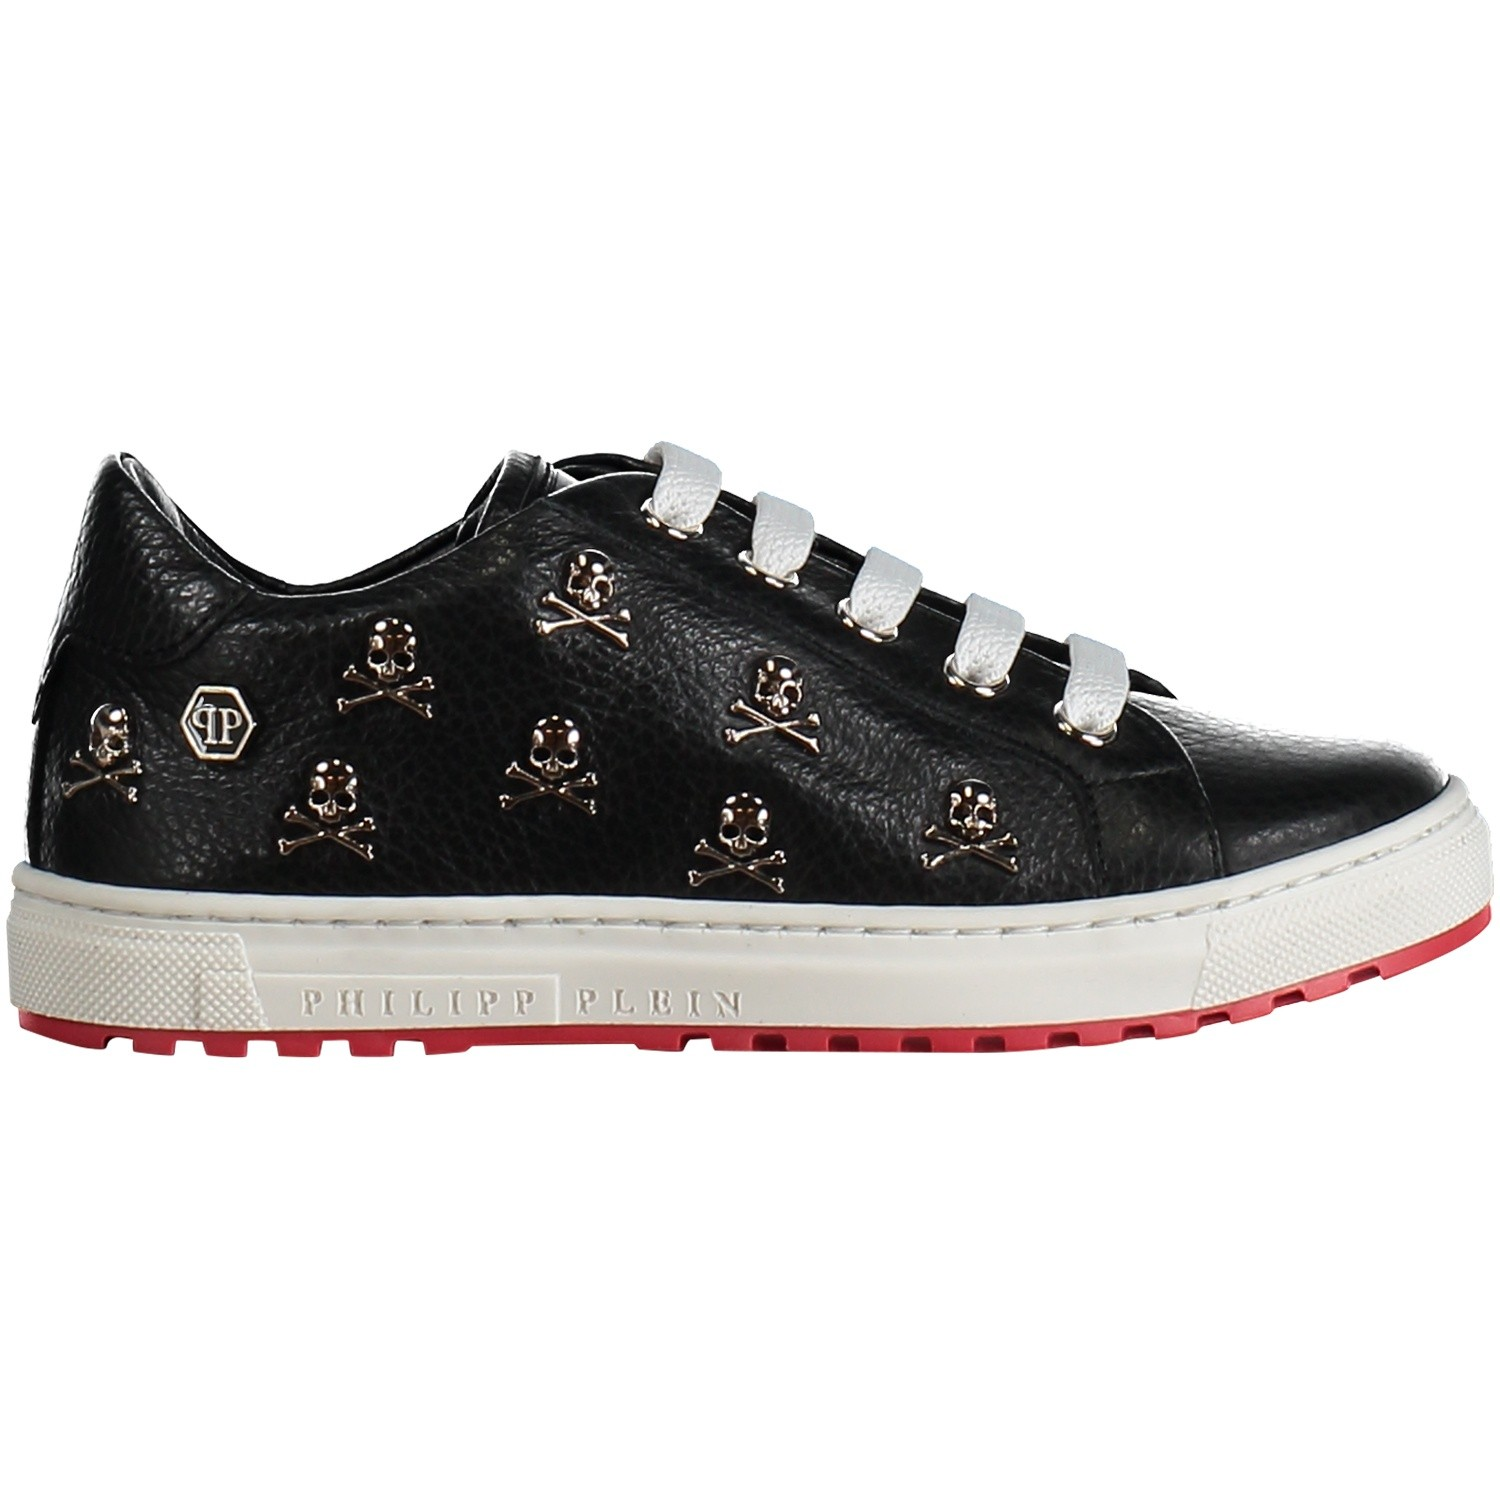 Picture of Philipp Plein BSC0054 kids sneakers black